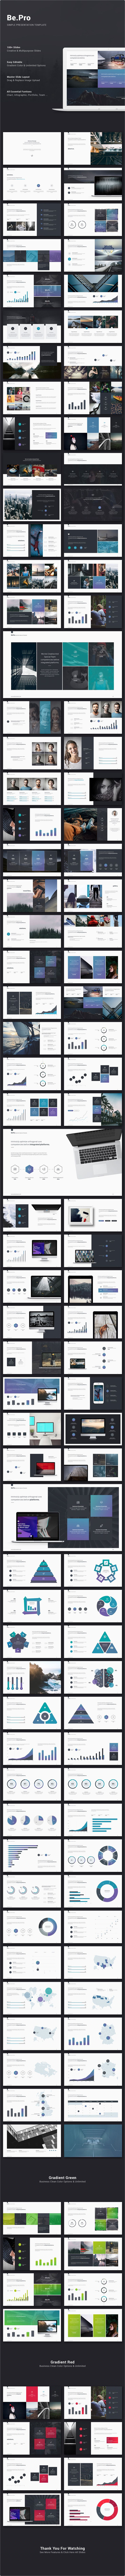 BePro Simple Business Template  Get a modern Keynote Presentation that is beautifully designed and functional. This slides comes with infographic elements, charts graphs and icons.  This present... Download here: https://graphicriver.net/item/bepro-simple-business-theme/18152431?ref=Classicdesignp